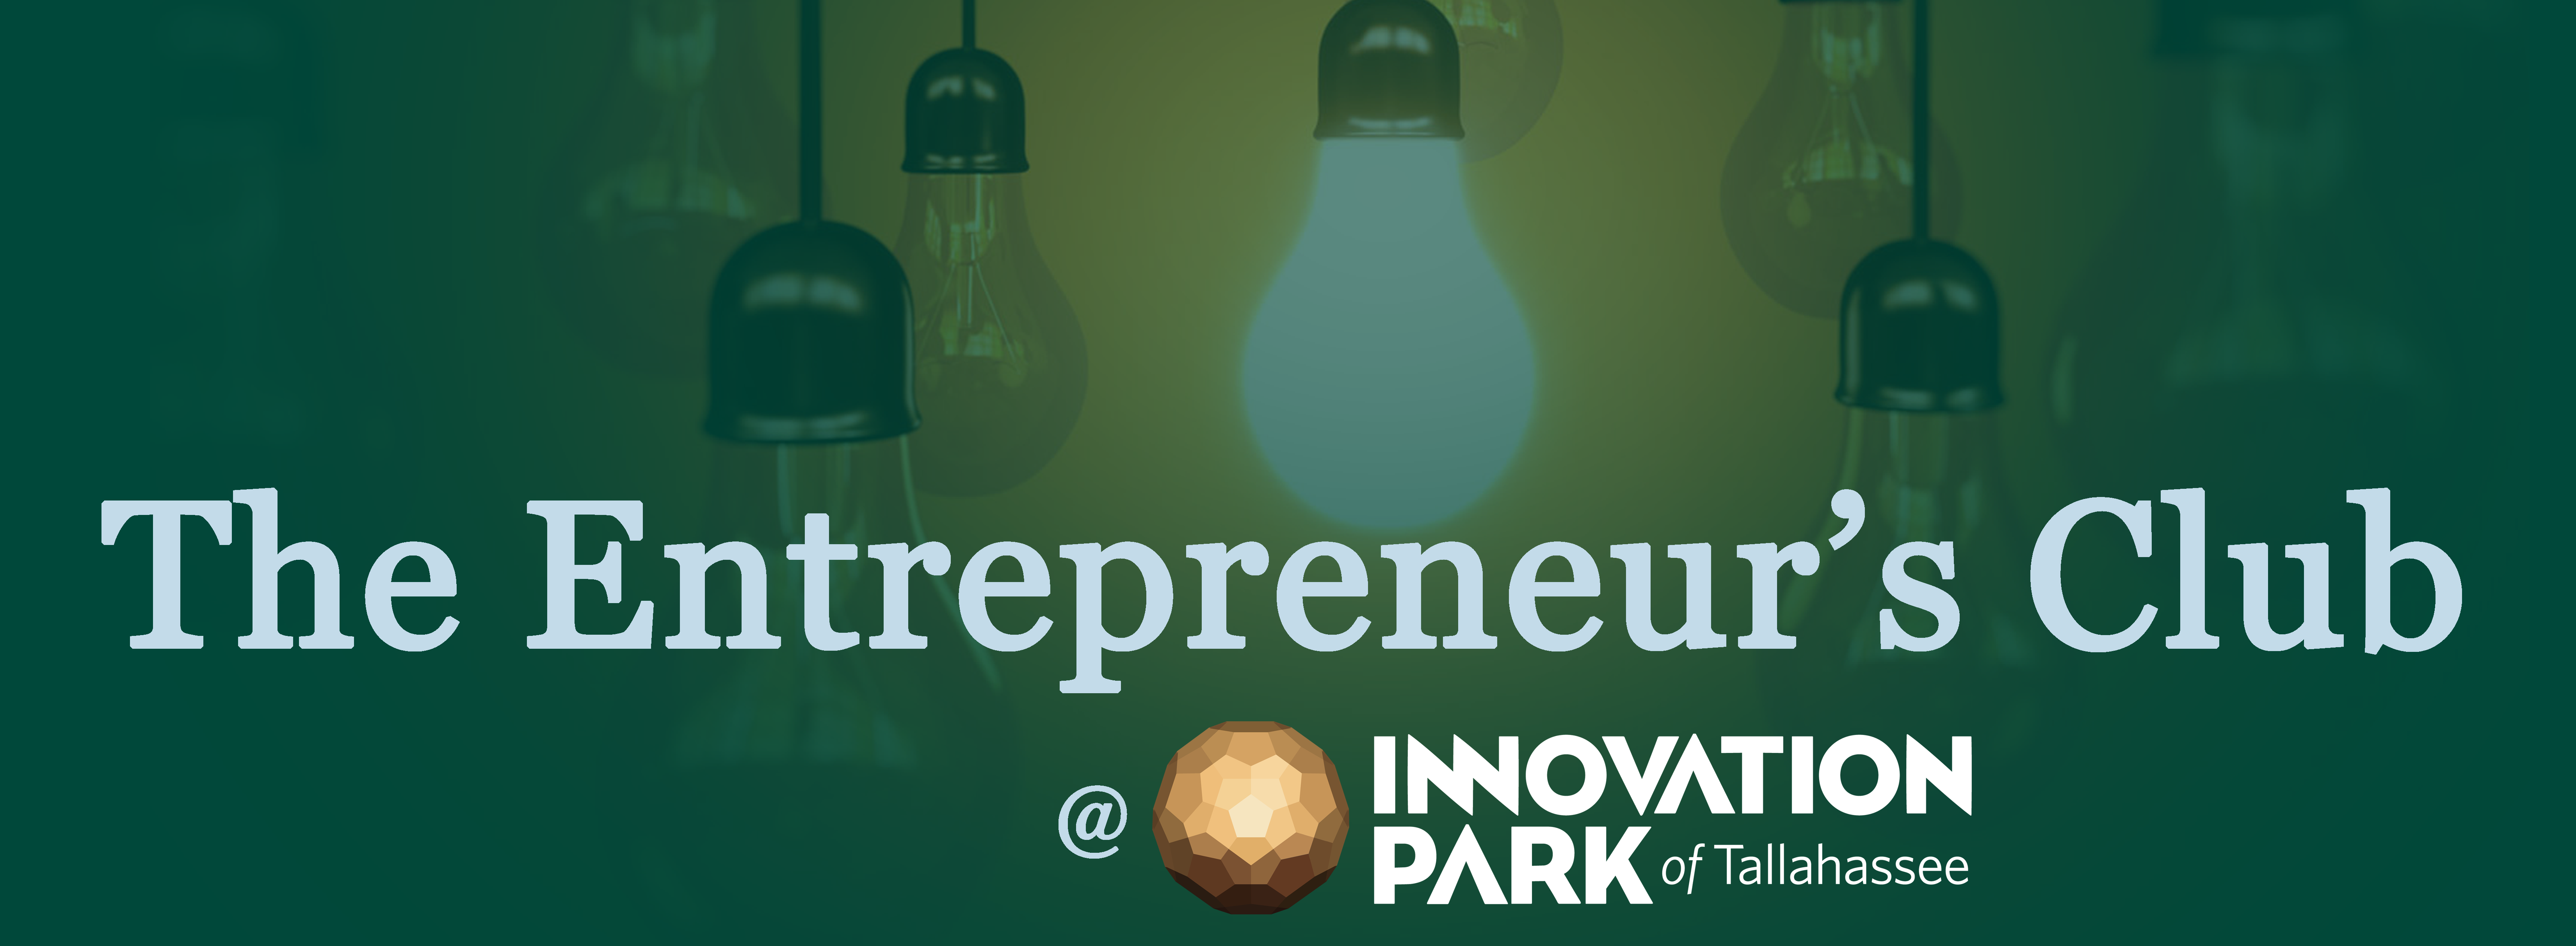 The Entrepreneur's Club at Innovation Park in Tallahassee provides an opportunity for entrepreneurs to engage, connect and collaborate with others.